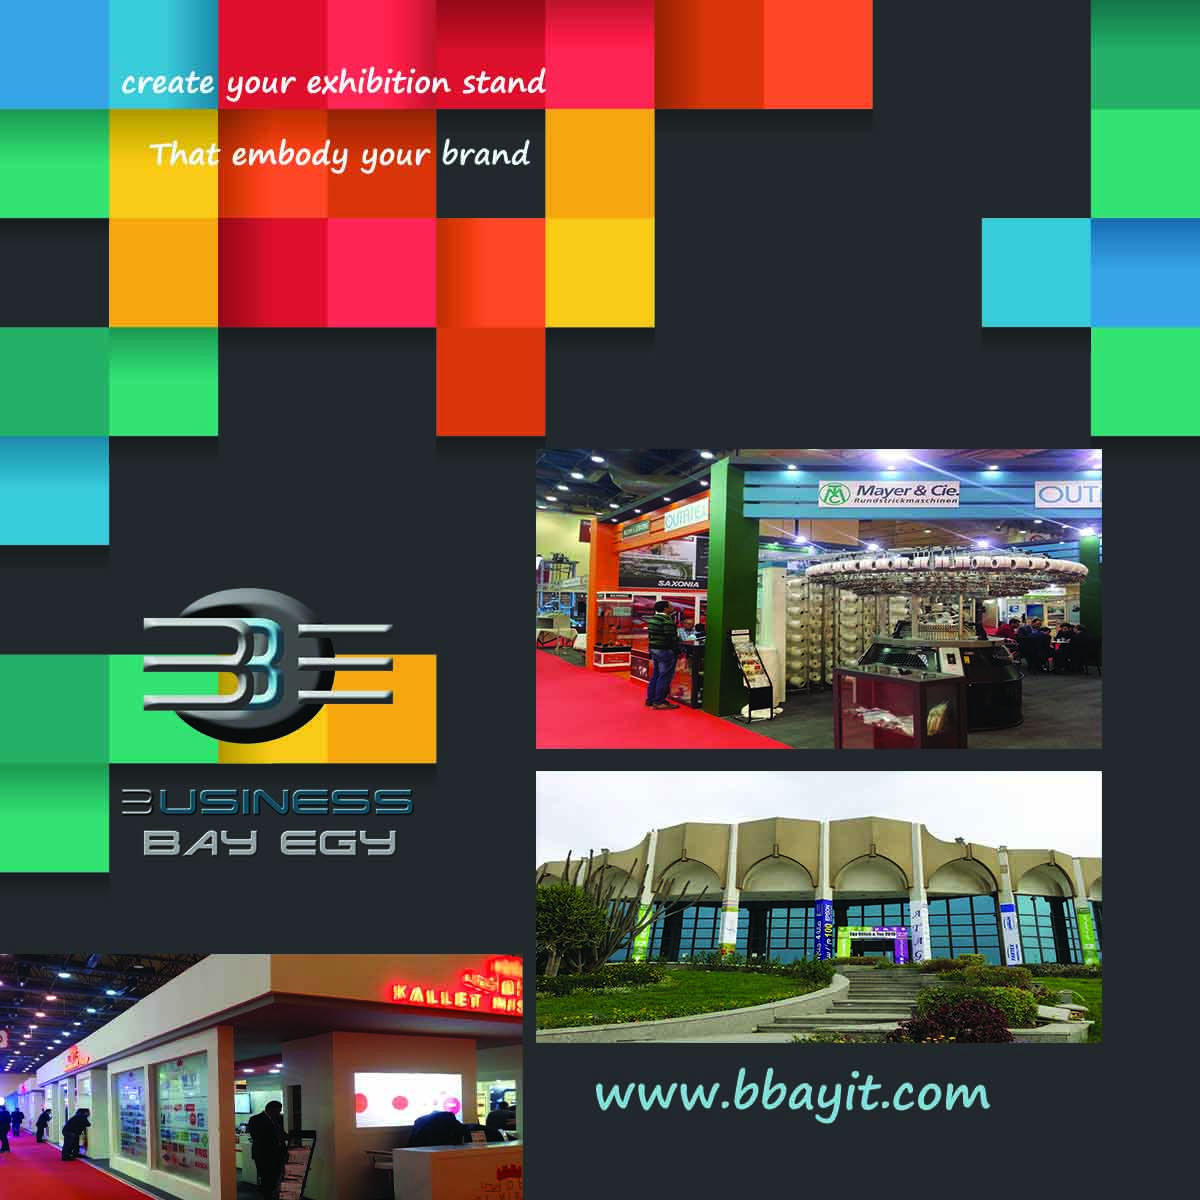 Exhibition Stand Design Egypt : Exhibitions stands builders and contractors and design in egypt and